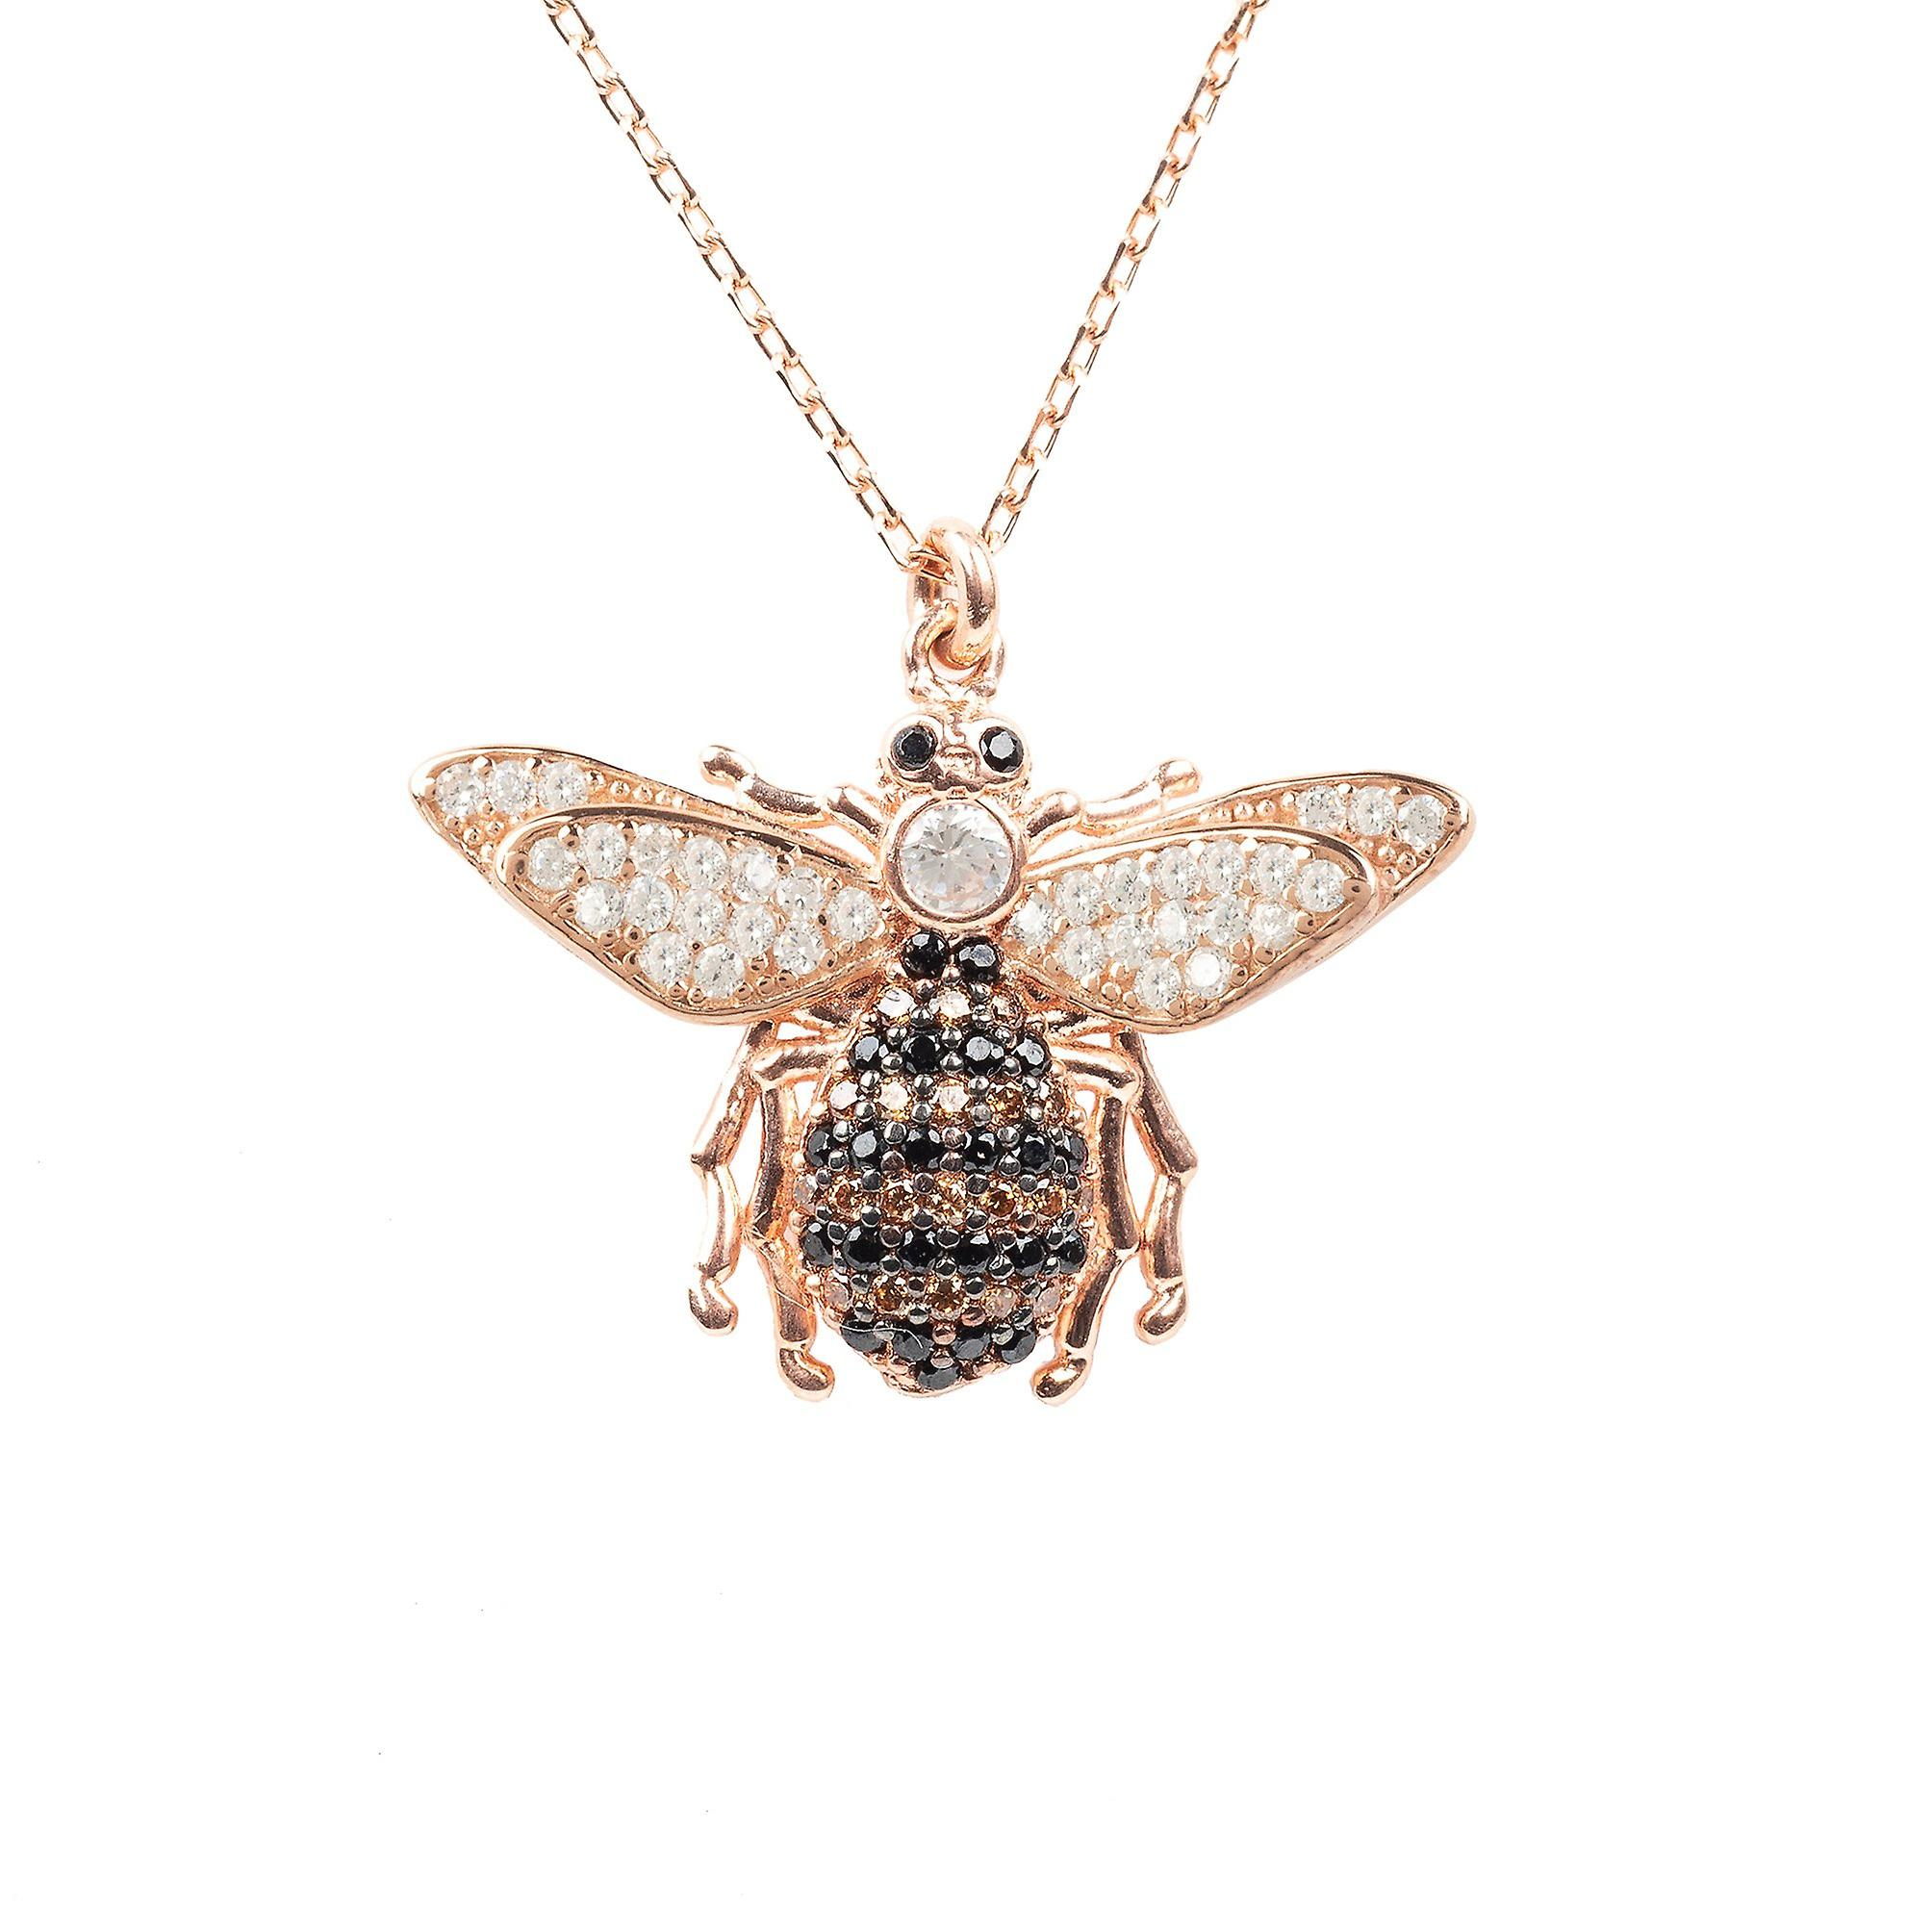 Latelita Pendant Necklace Honey Bumble Bee Queen Rose Gold Pink CZ 925 Silver